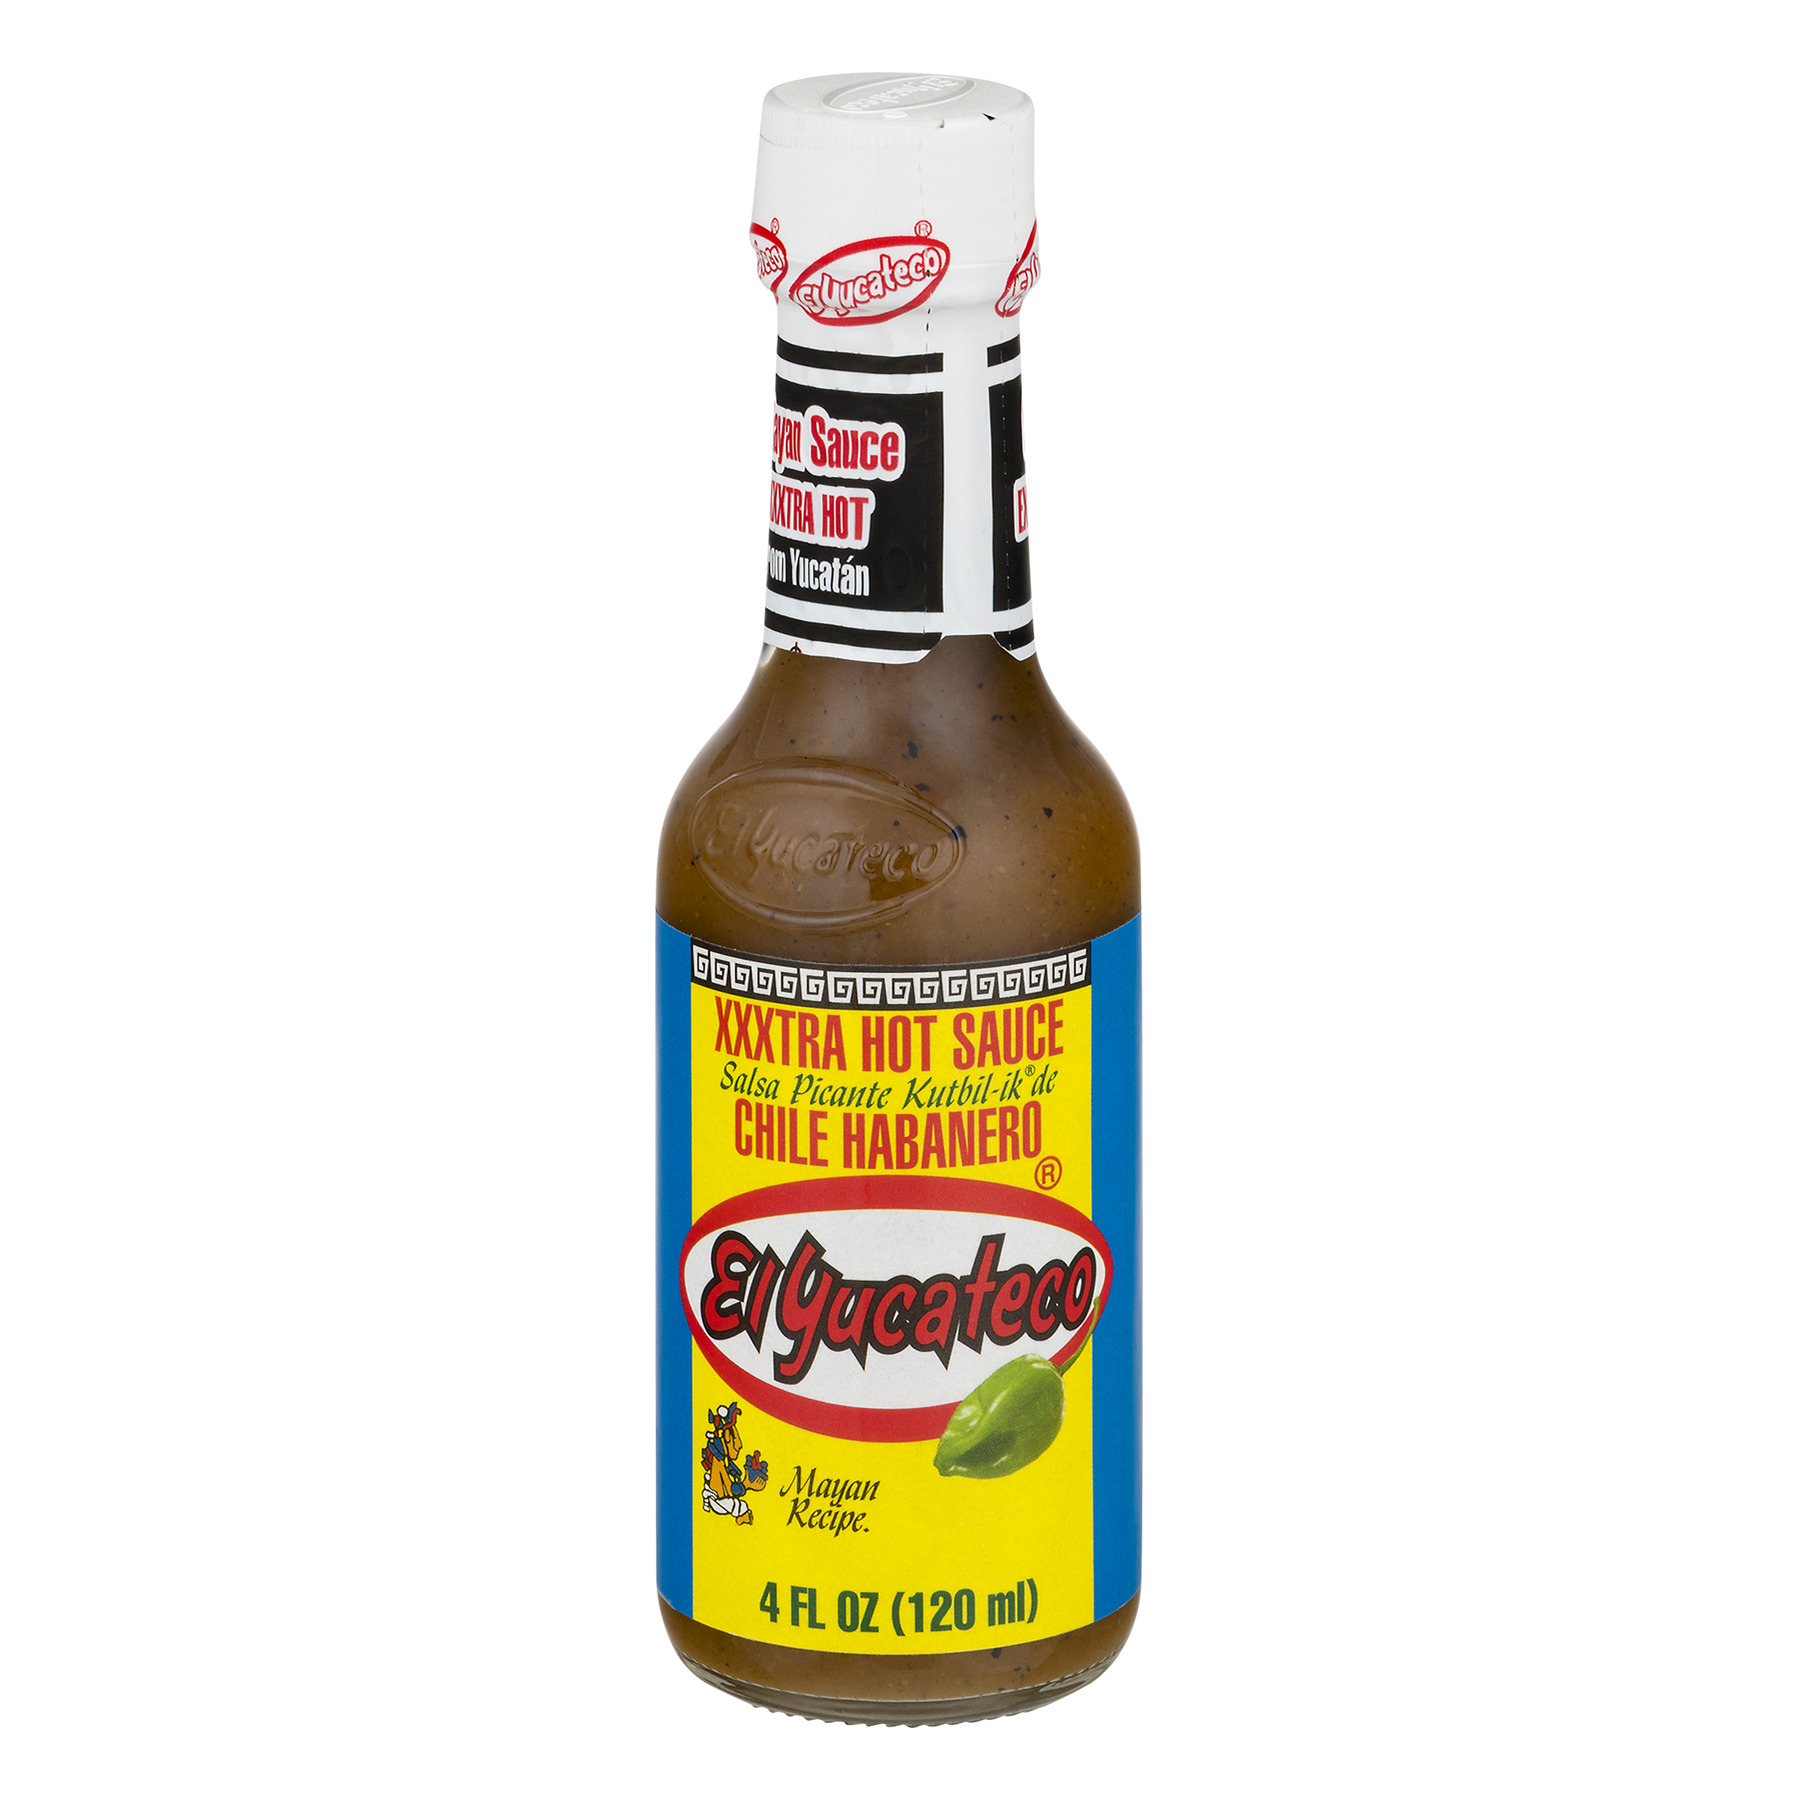 (4 Pack) El Yucateco Chile Habanero Xxxtra Hot Sauce, 4 fl oz